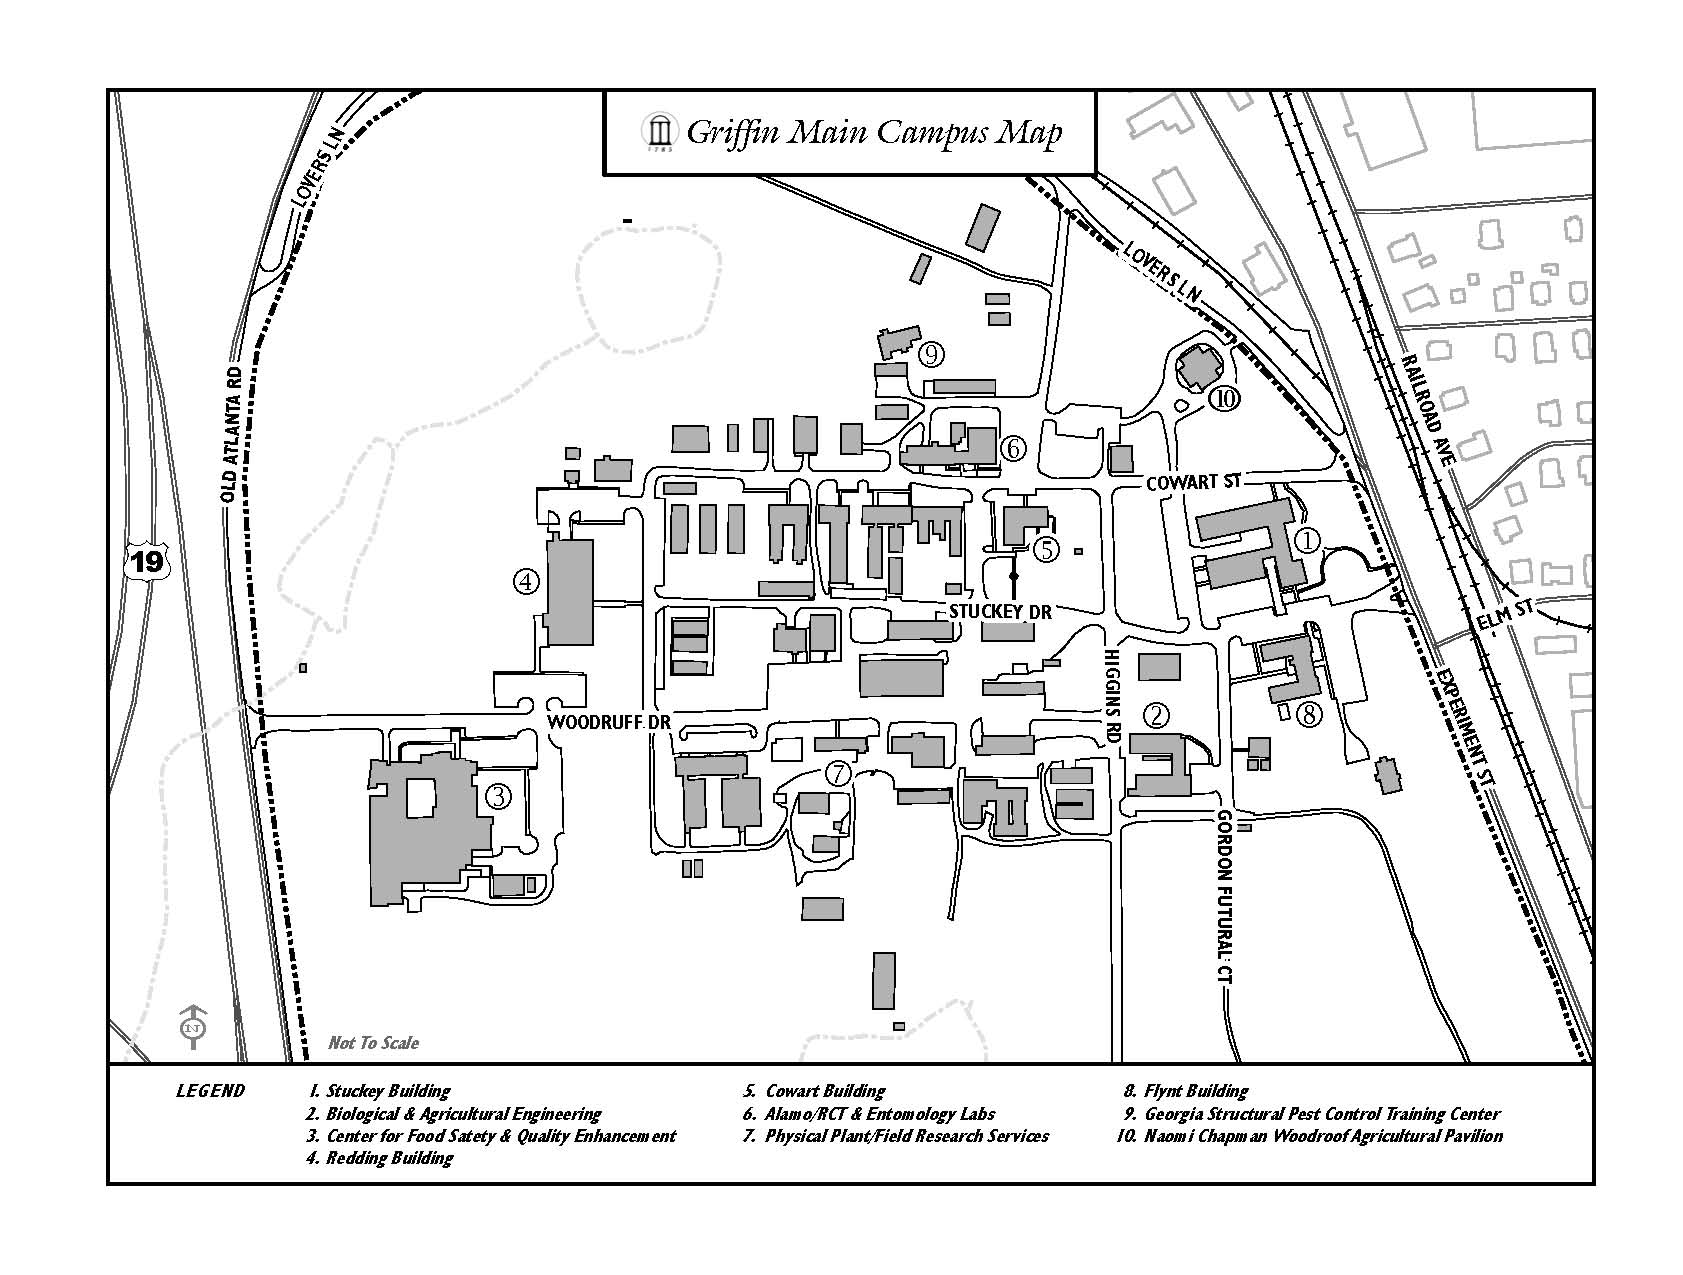 Uga Campus Map With Building Numbers.Curators Workshop Transportation Archived Usda Ars